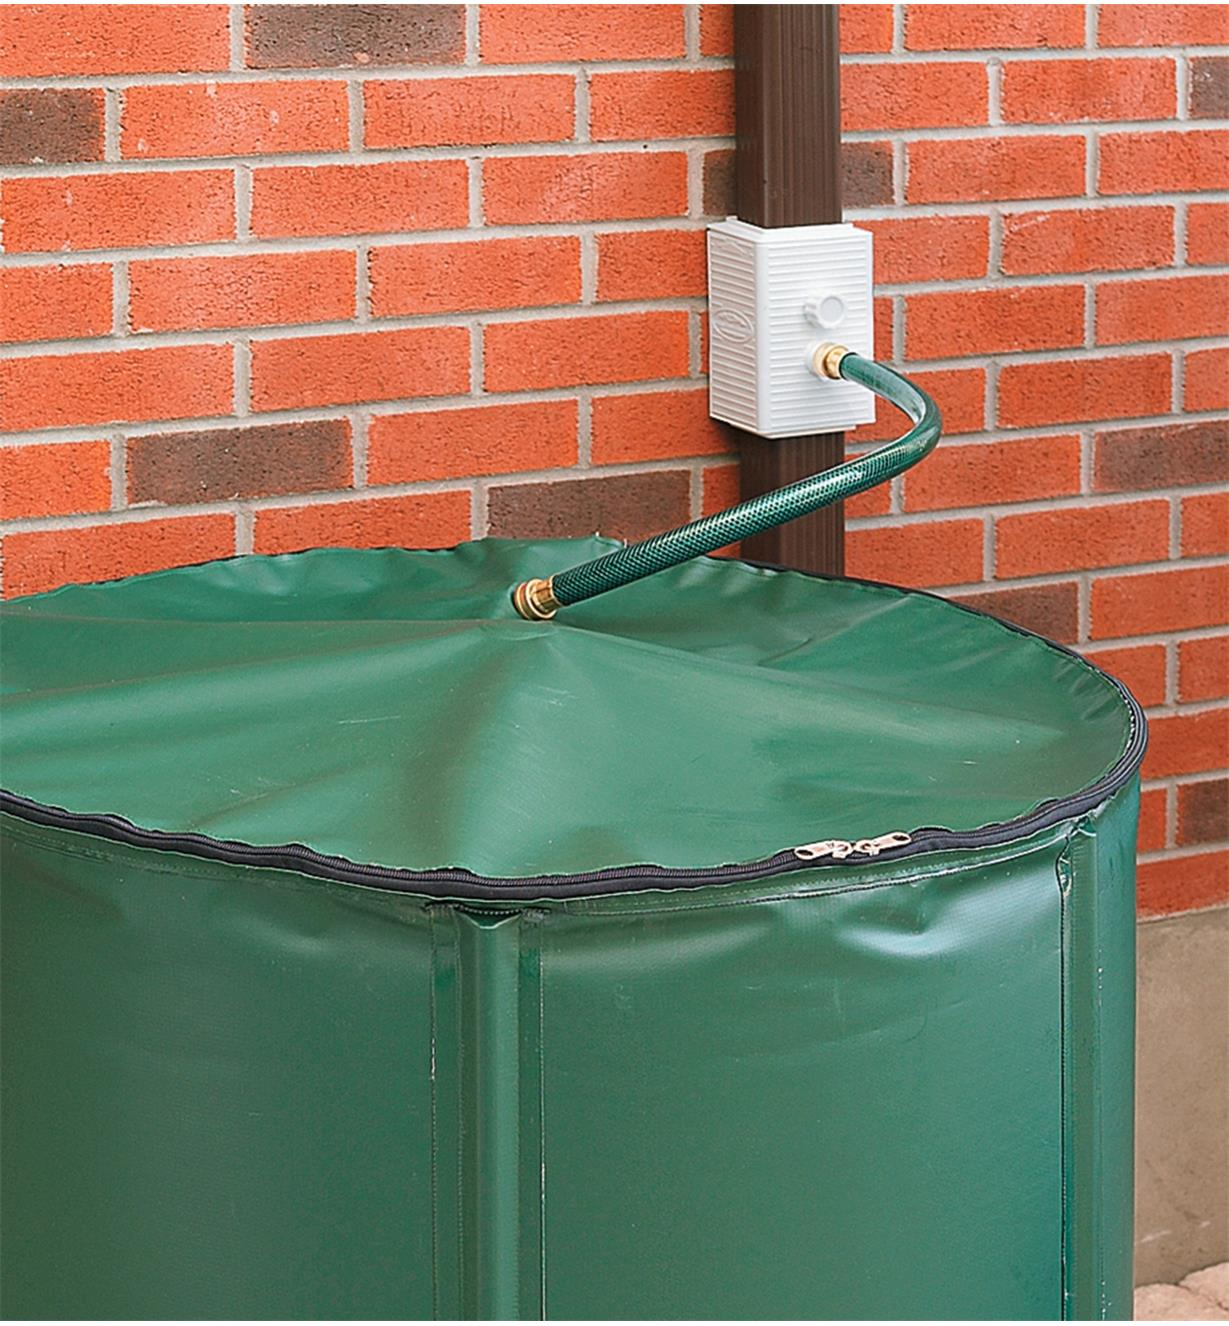 A Universal Downspout Diverter attached to a downspout and a hose leading to a rain barrel